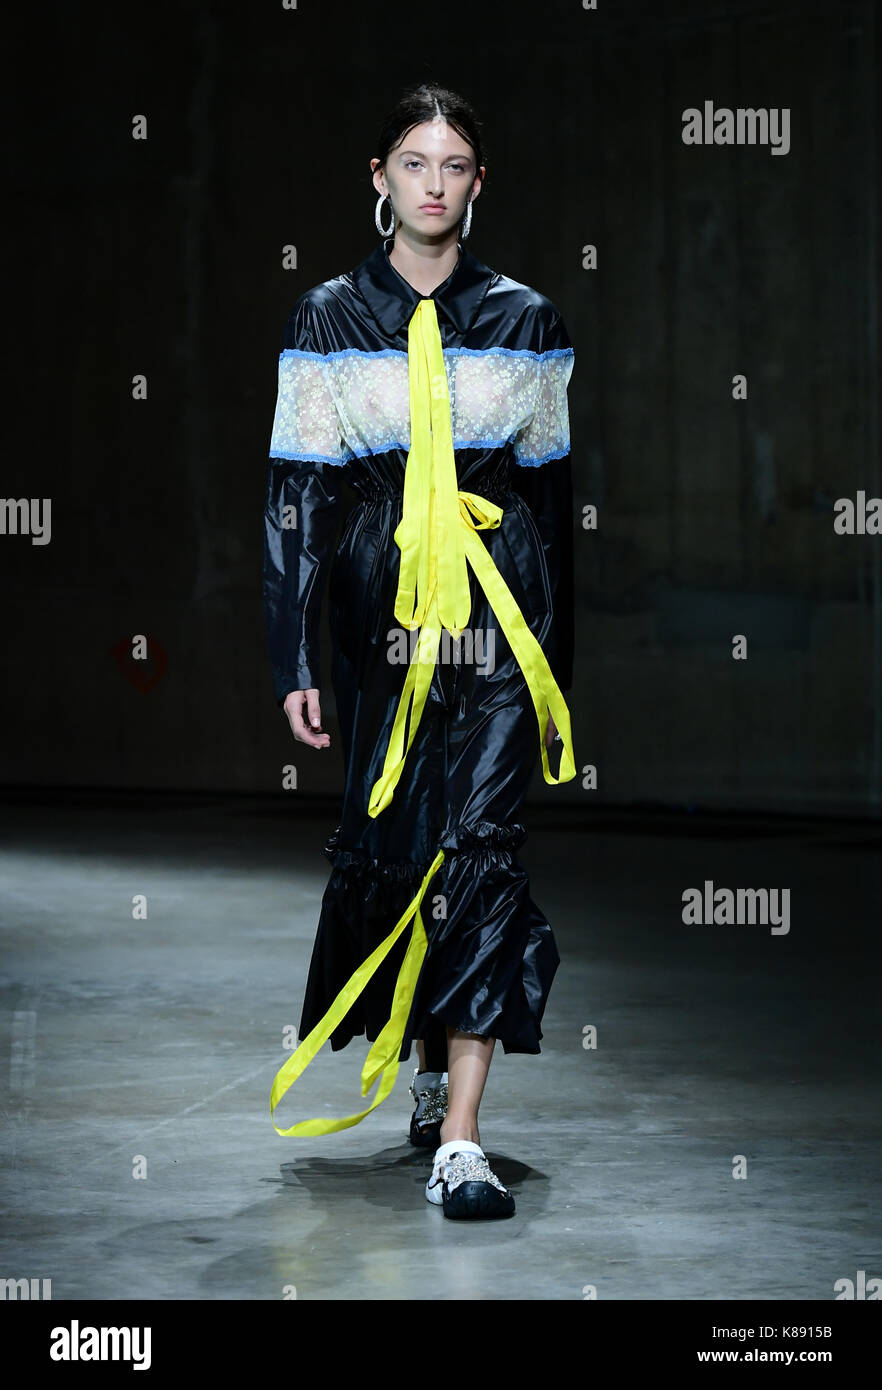 A model on the catwalk during the Christopher Kane Show as